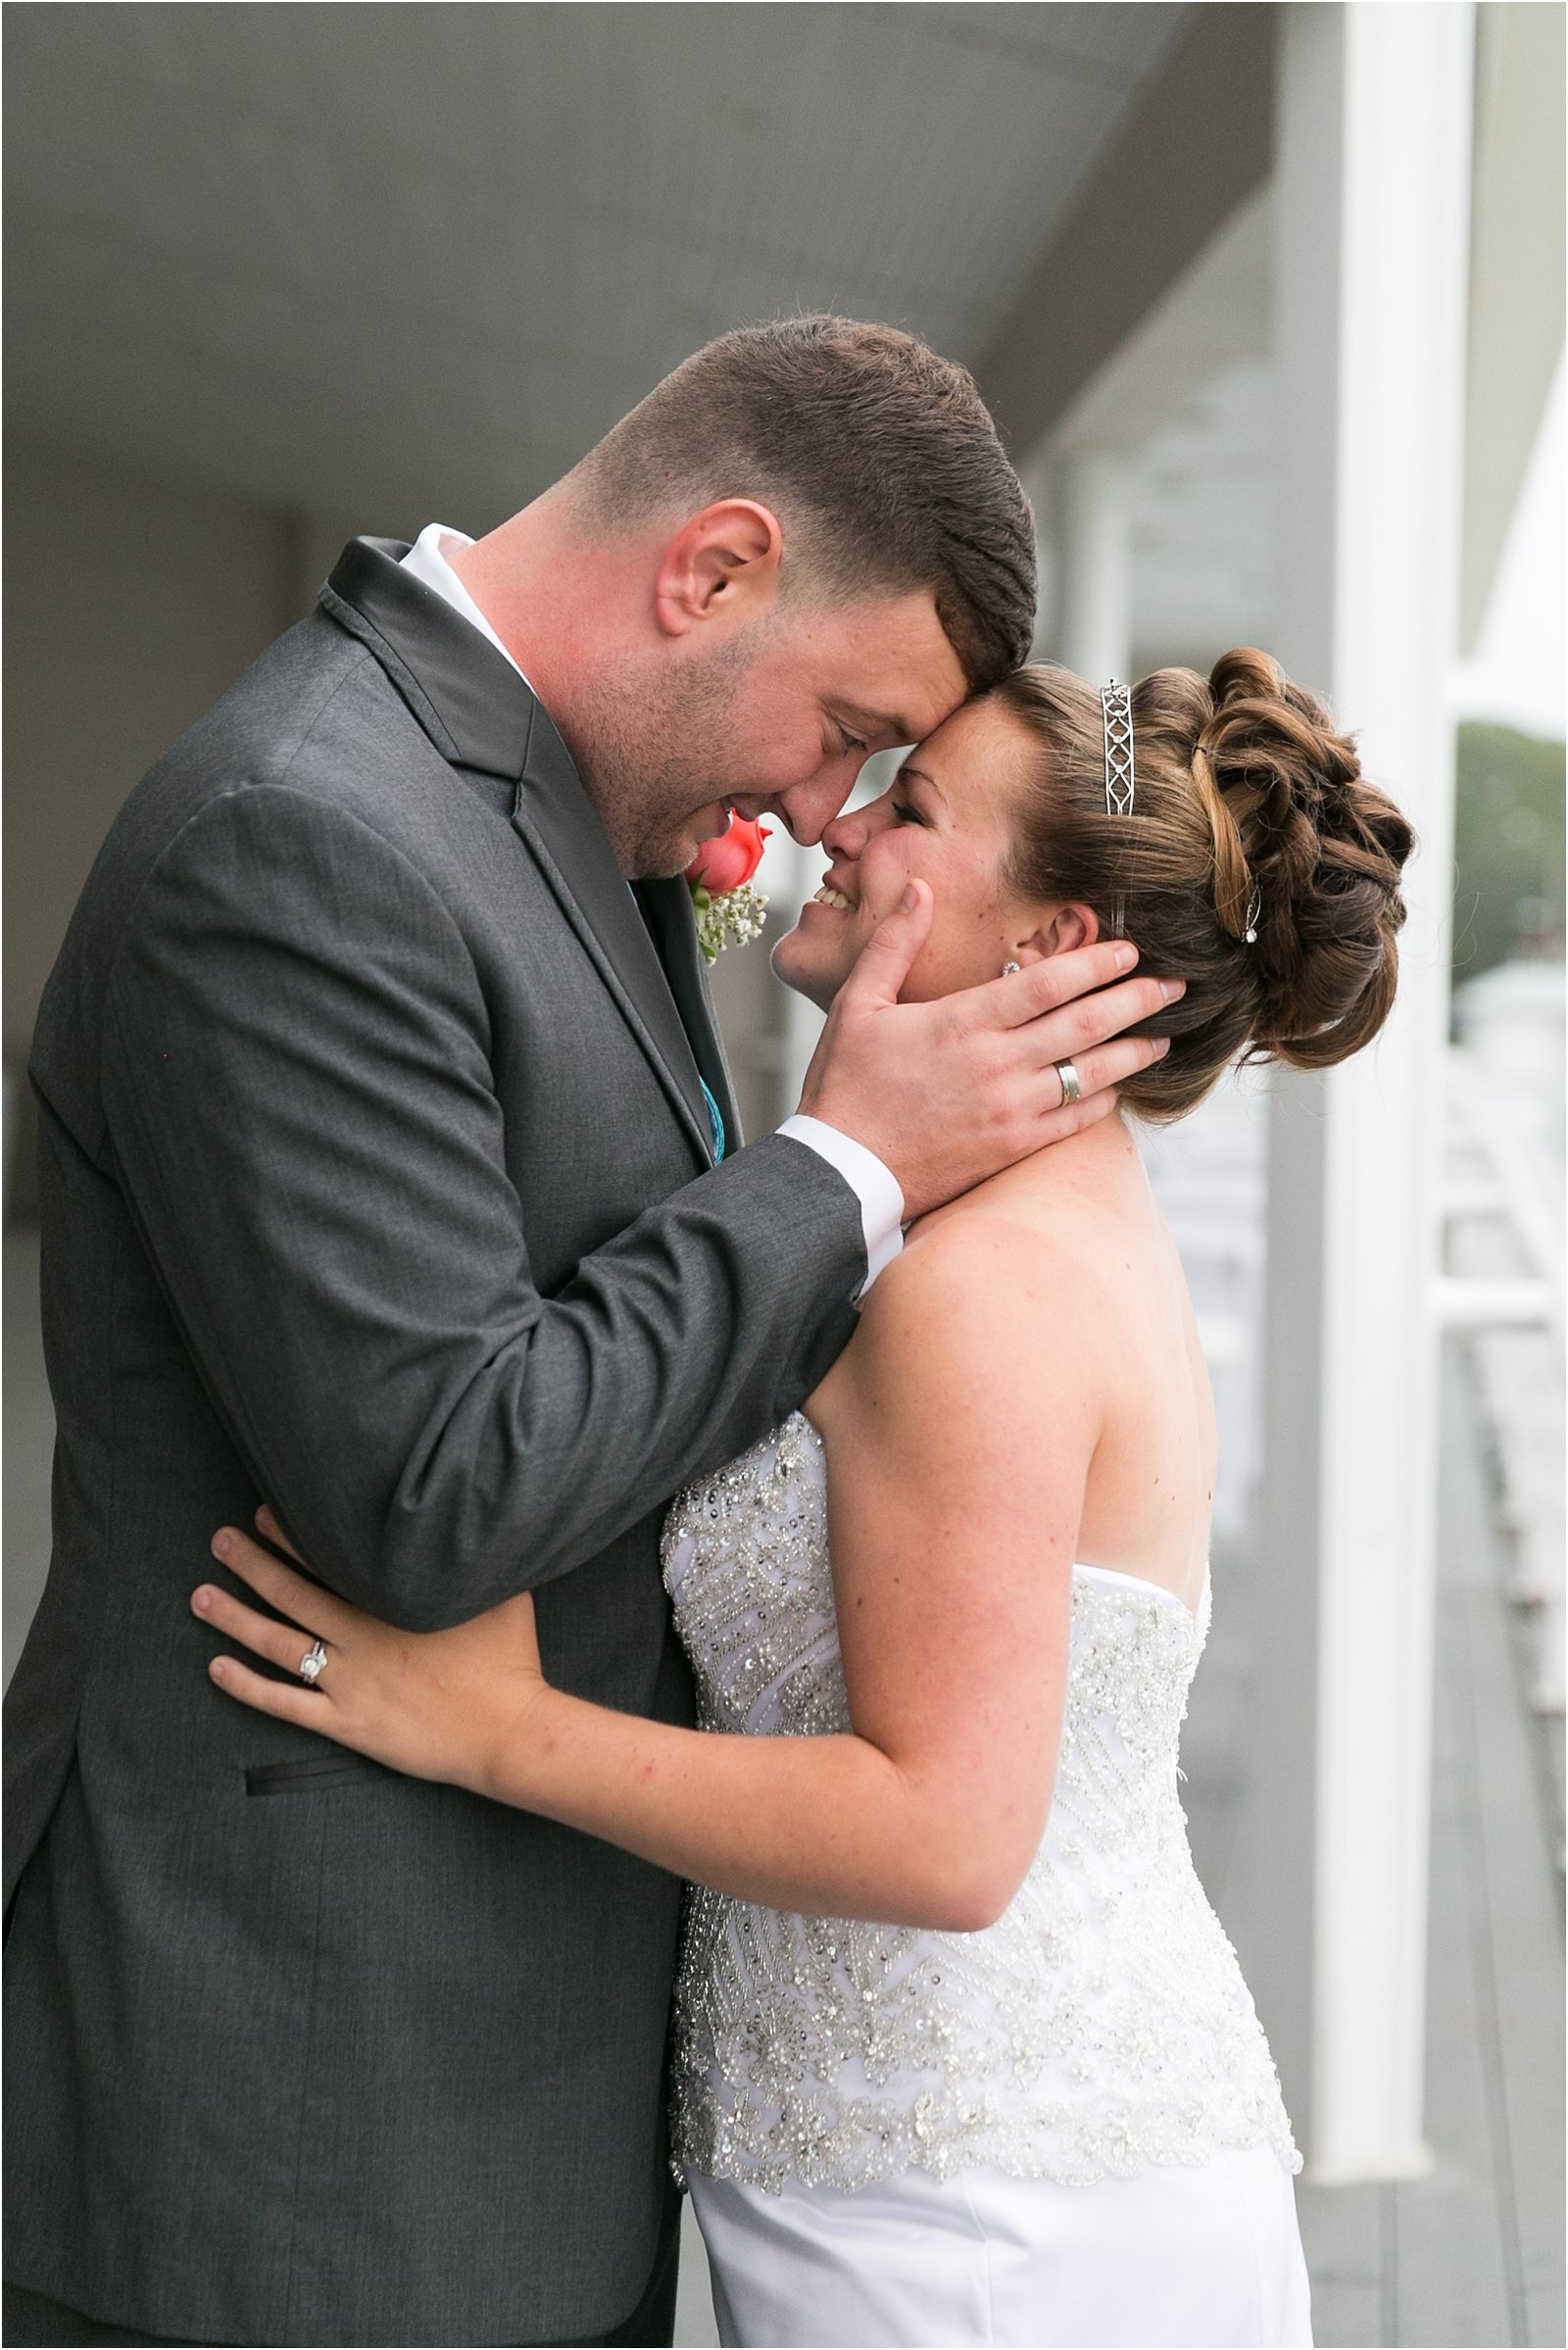 jessica_ryan_photography_lesner_inn_wedding_virginia_beach_rainy_day_0511